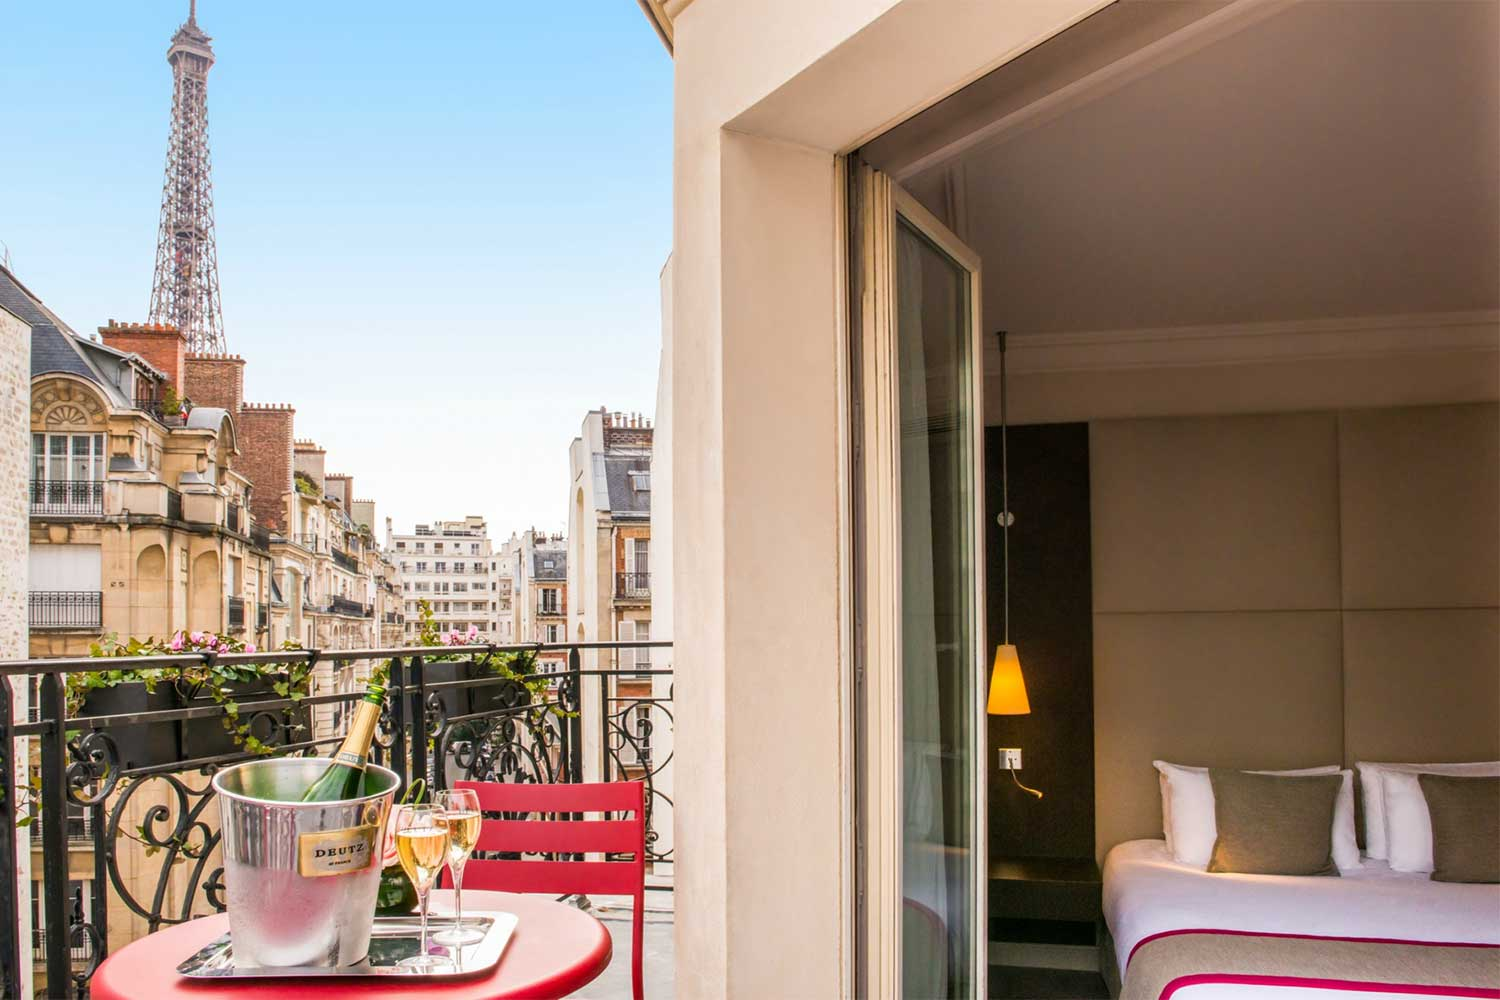 paris-hotel-with-balcony-view-of-eiffel-tower